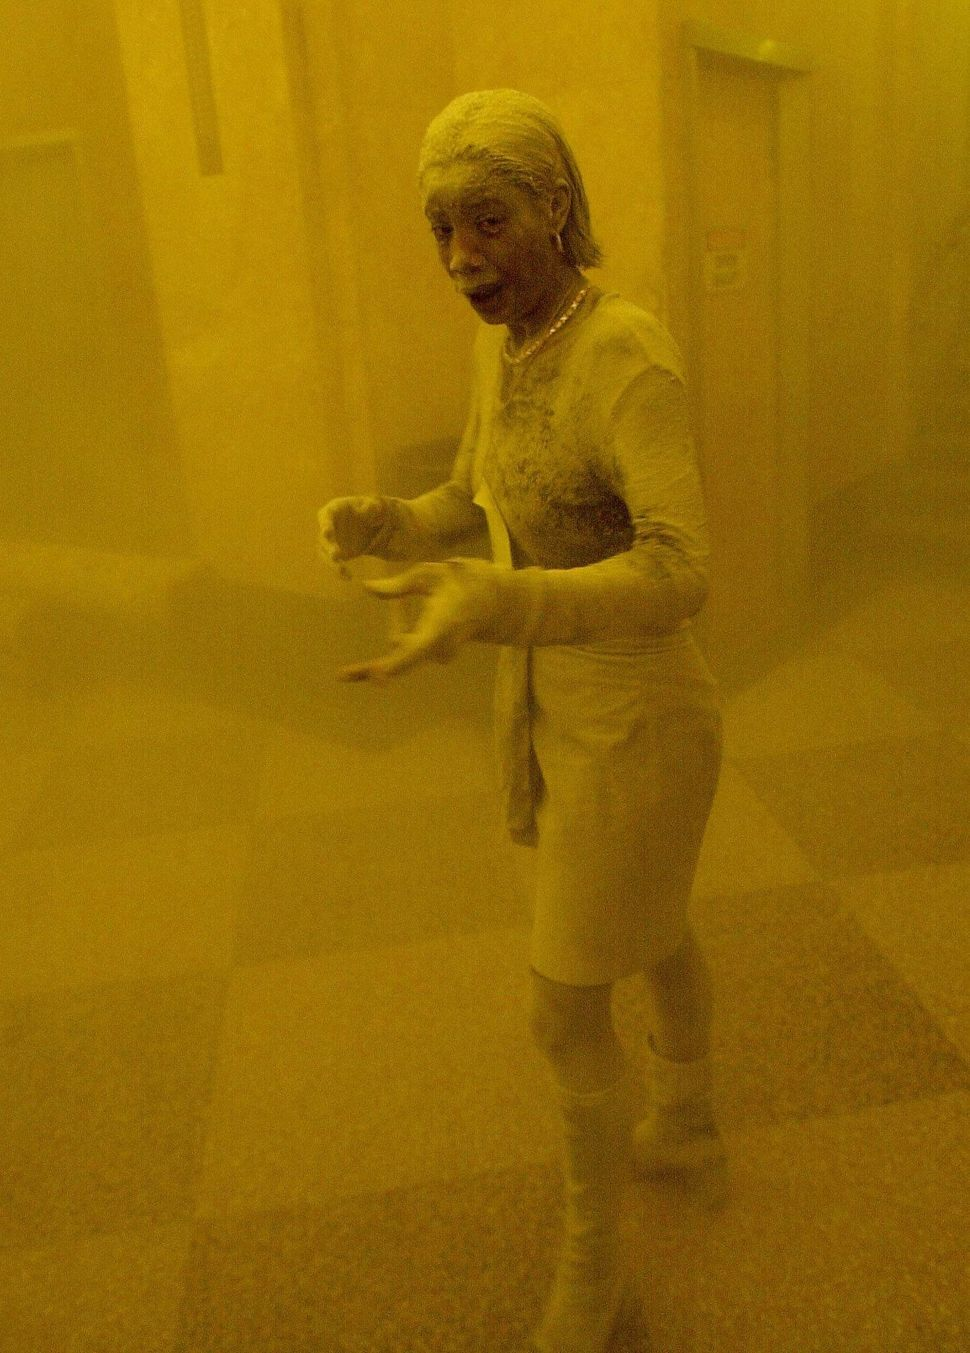 Marcy Borders is covered in dust as she takes refuge in an office building. Borders died in 2015 after a battle with can